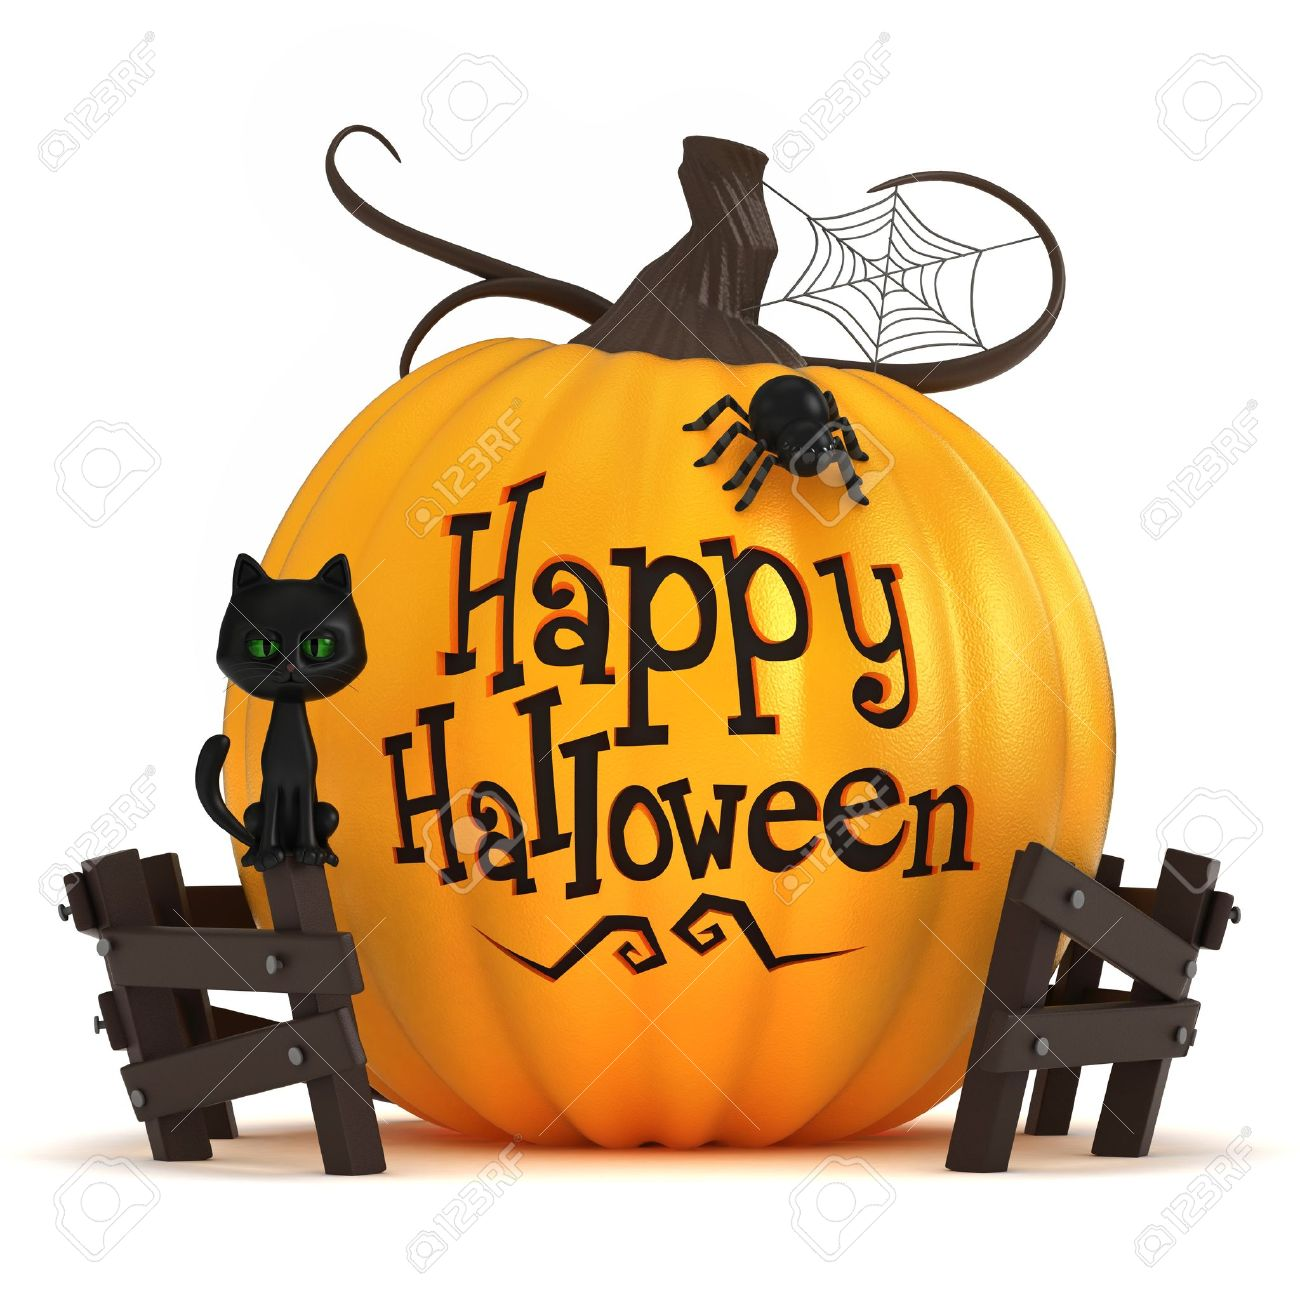 3d render of a halloween pumpkin stock photo picture and royalty